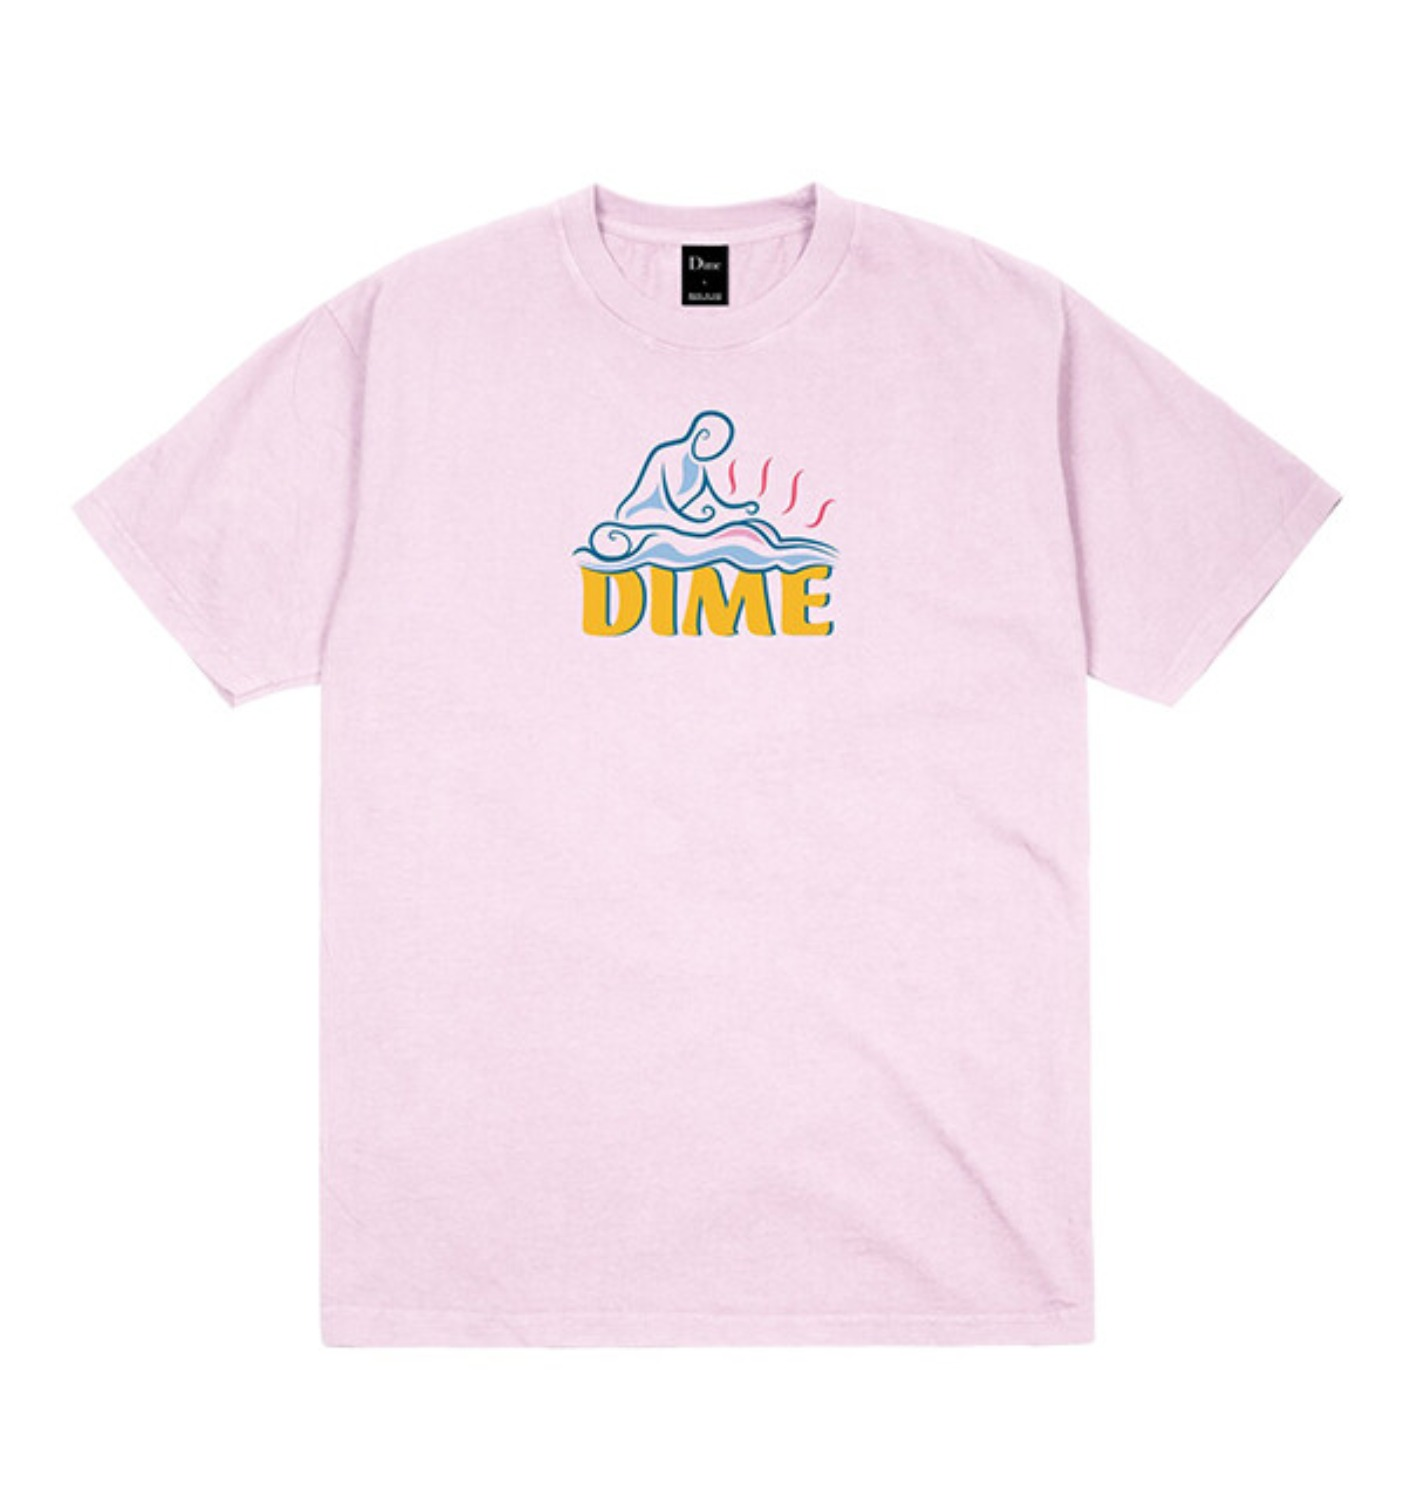 RELIEF T-SHIRT PINK